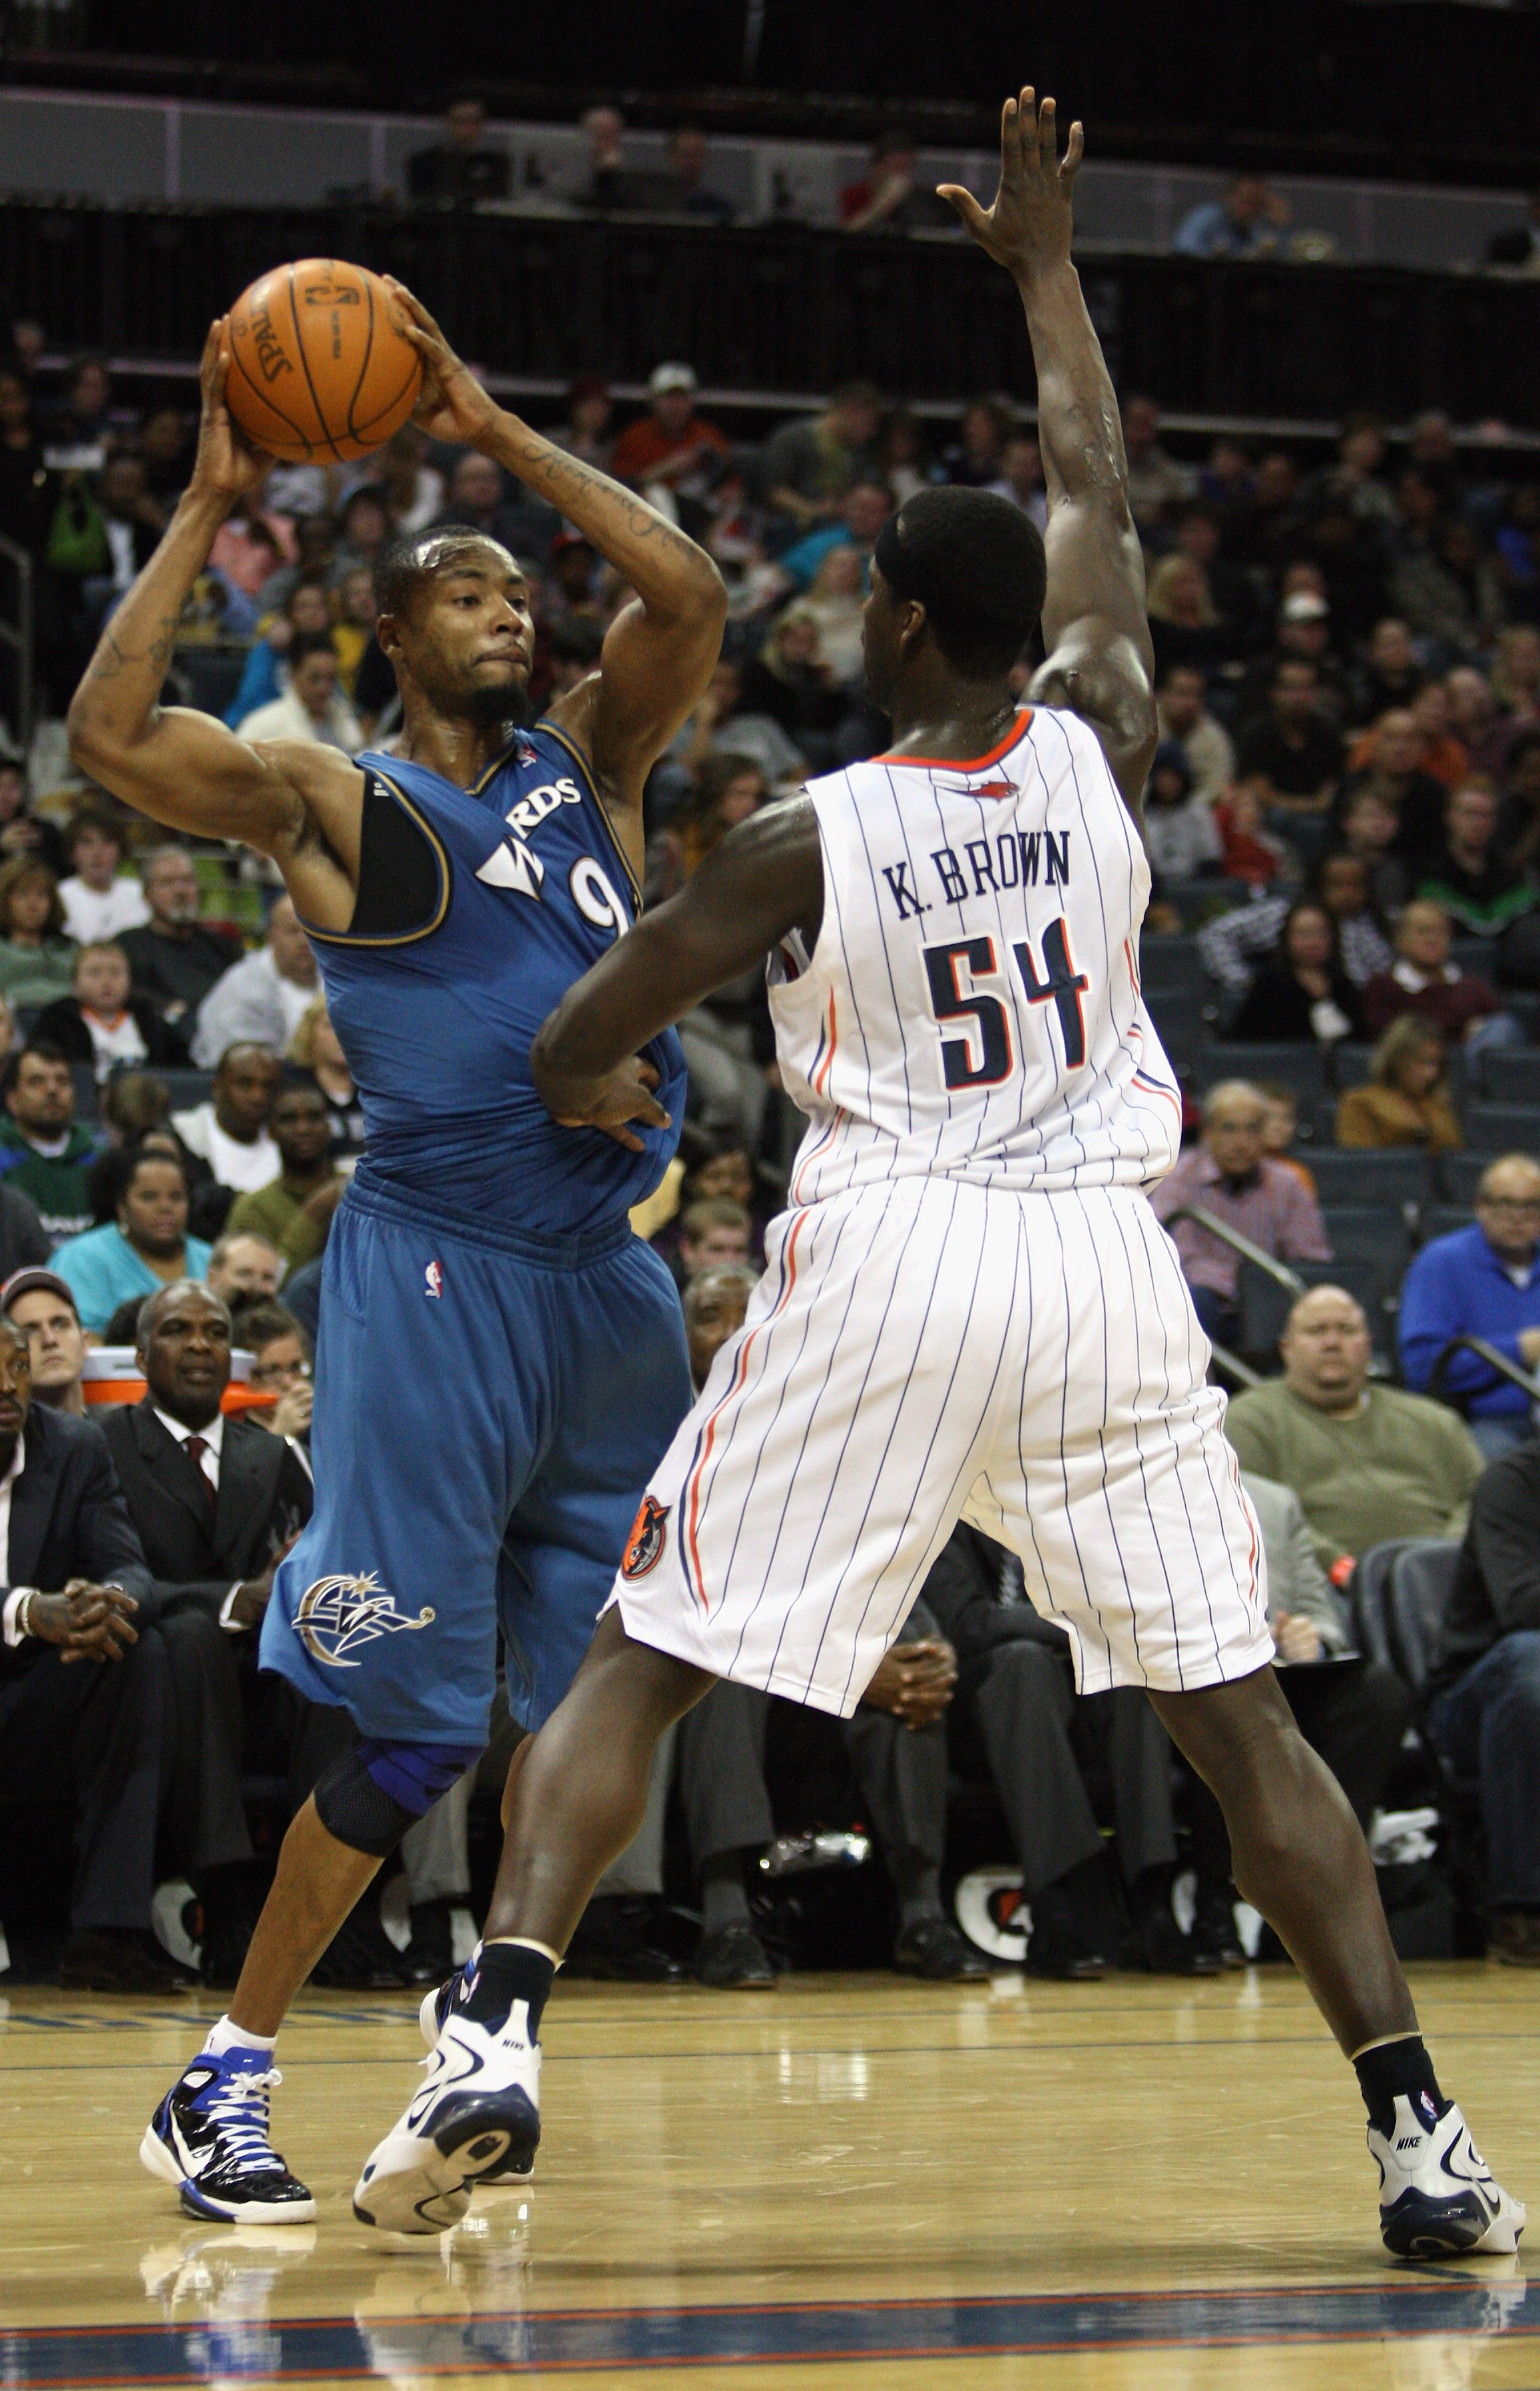 CHARLOTTE, NC - JANUARY 08:  Rashard Lewis #9 of the Washington Wizards looks to pass the ball around Kwame Brown #54 of the Charlotte Bobcats during their game at Time Warner Cable Arena on January 8, 2011 in Charlotte, North Carolina. NOTE TO USER: User